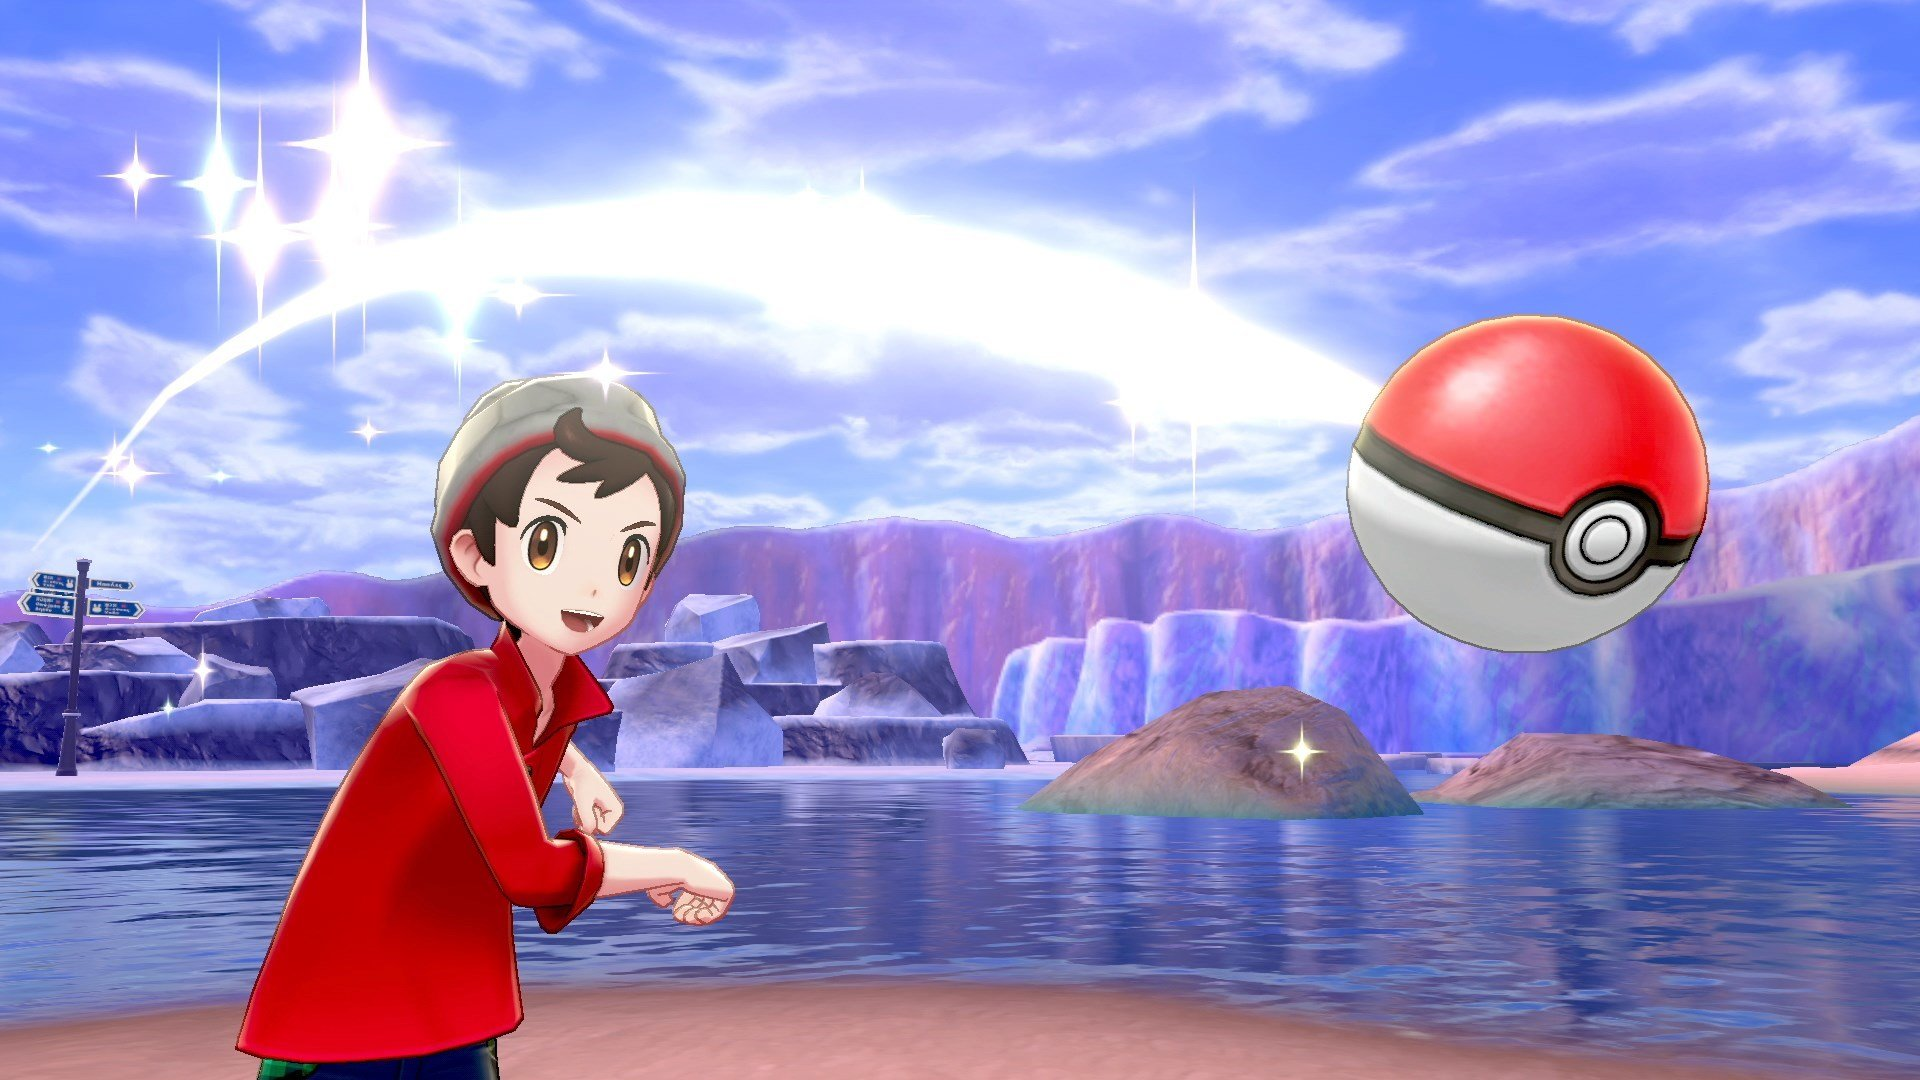 Pre-order bonuses for Pokemon Sword and Shield include a $10 credit at Amazon and Best Buy, and a Plush Key Chain Gift at The Pokemon Center.